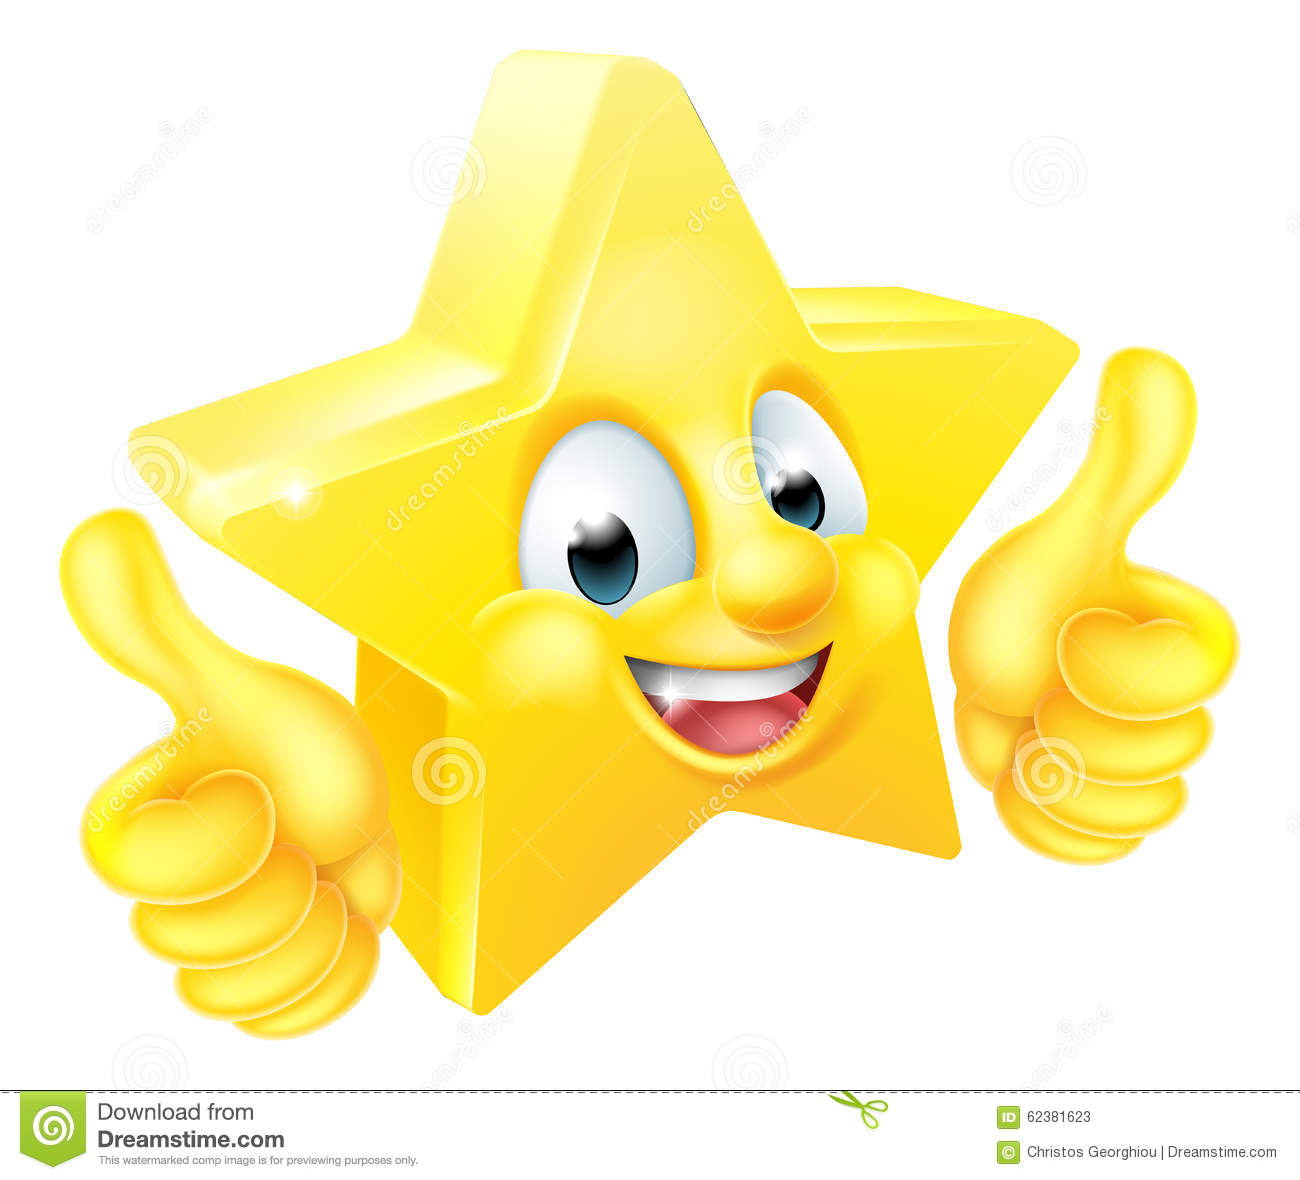 Star thumbs up clipart graphic transparent Star thumbs up clipart - ClipartFest graphic transparent